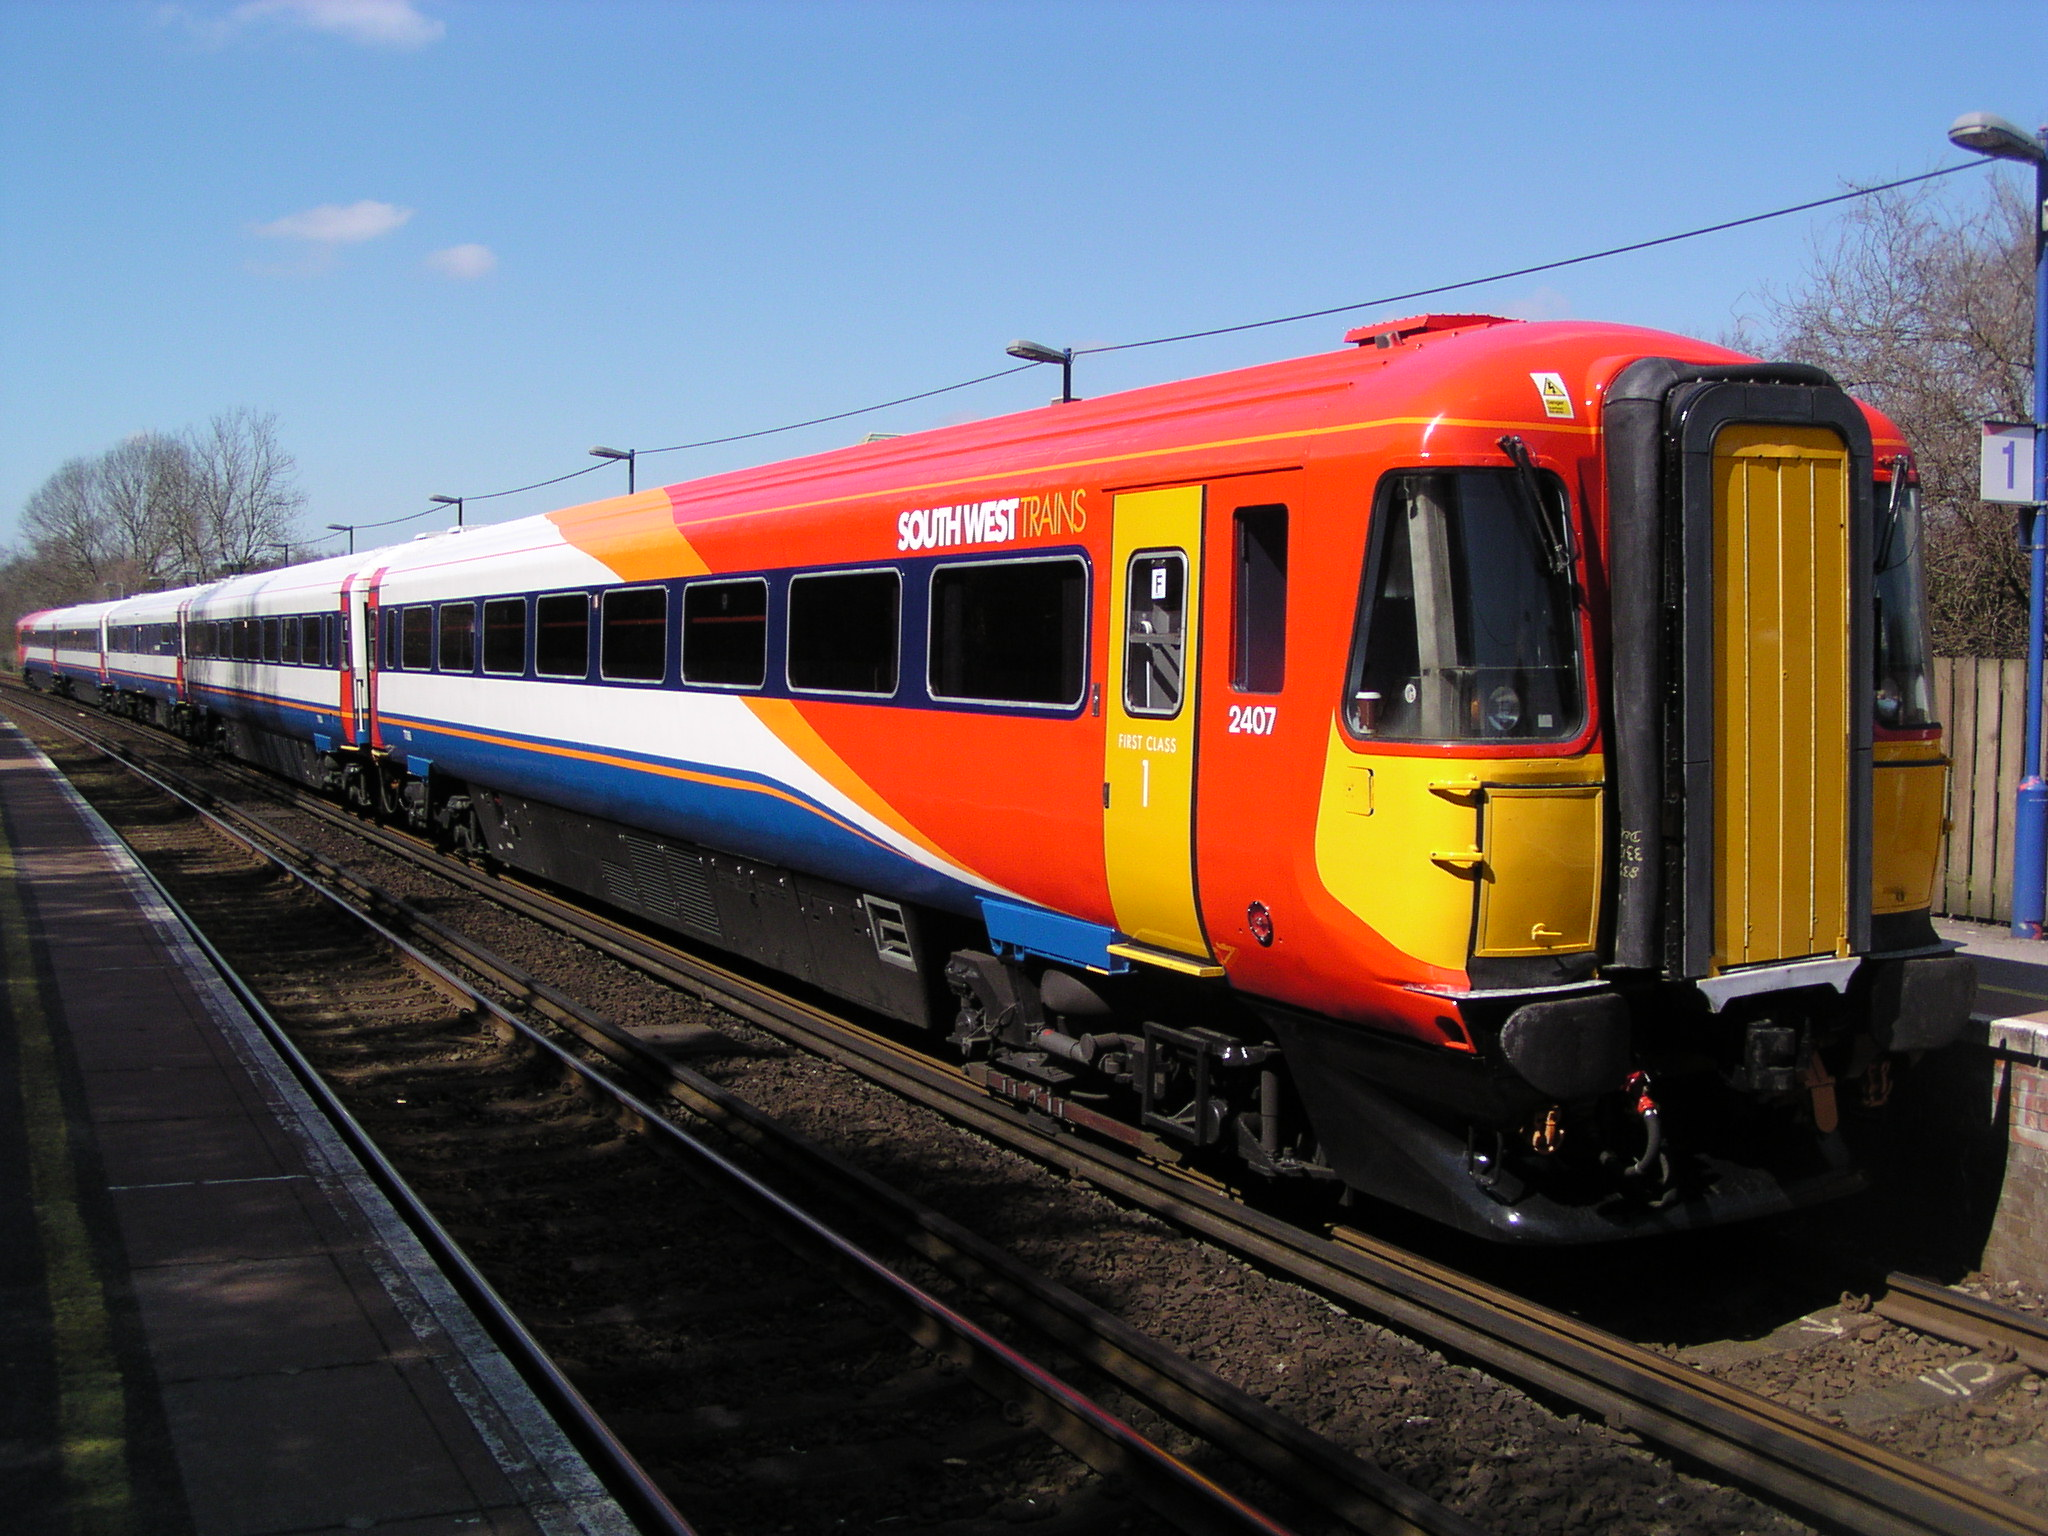 File:2407 at Moreton, Dorset.JPG